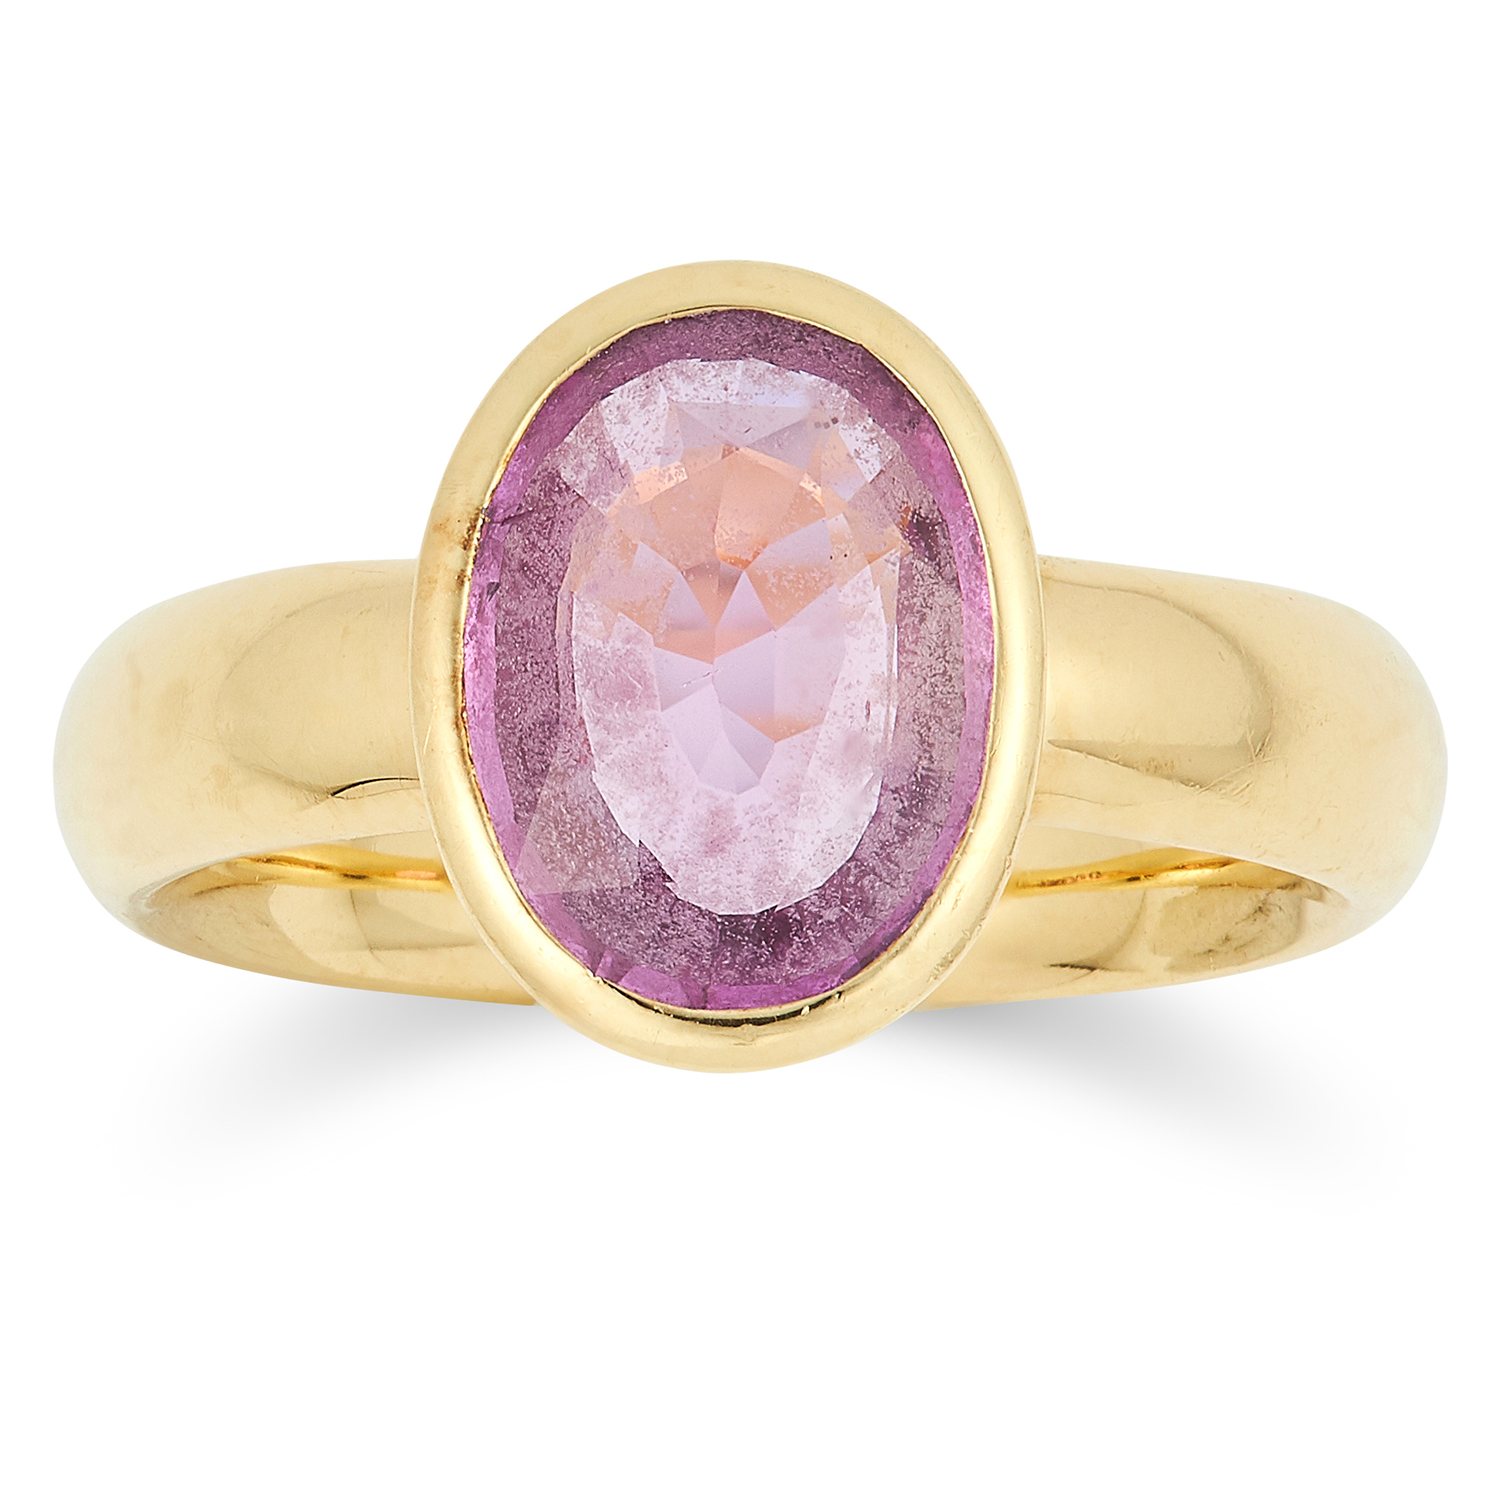 A PINK SAPPHIRE RING set with an oval cut pink sapphire, on later George Jensen band, size L / 5.